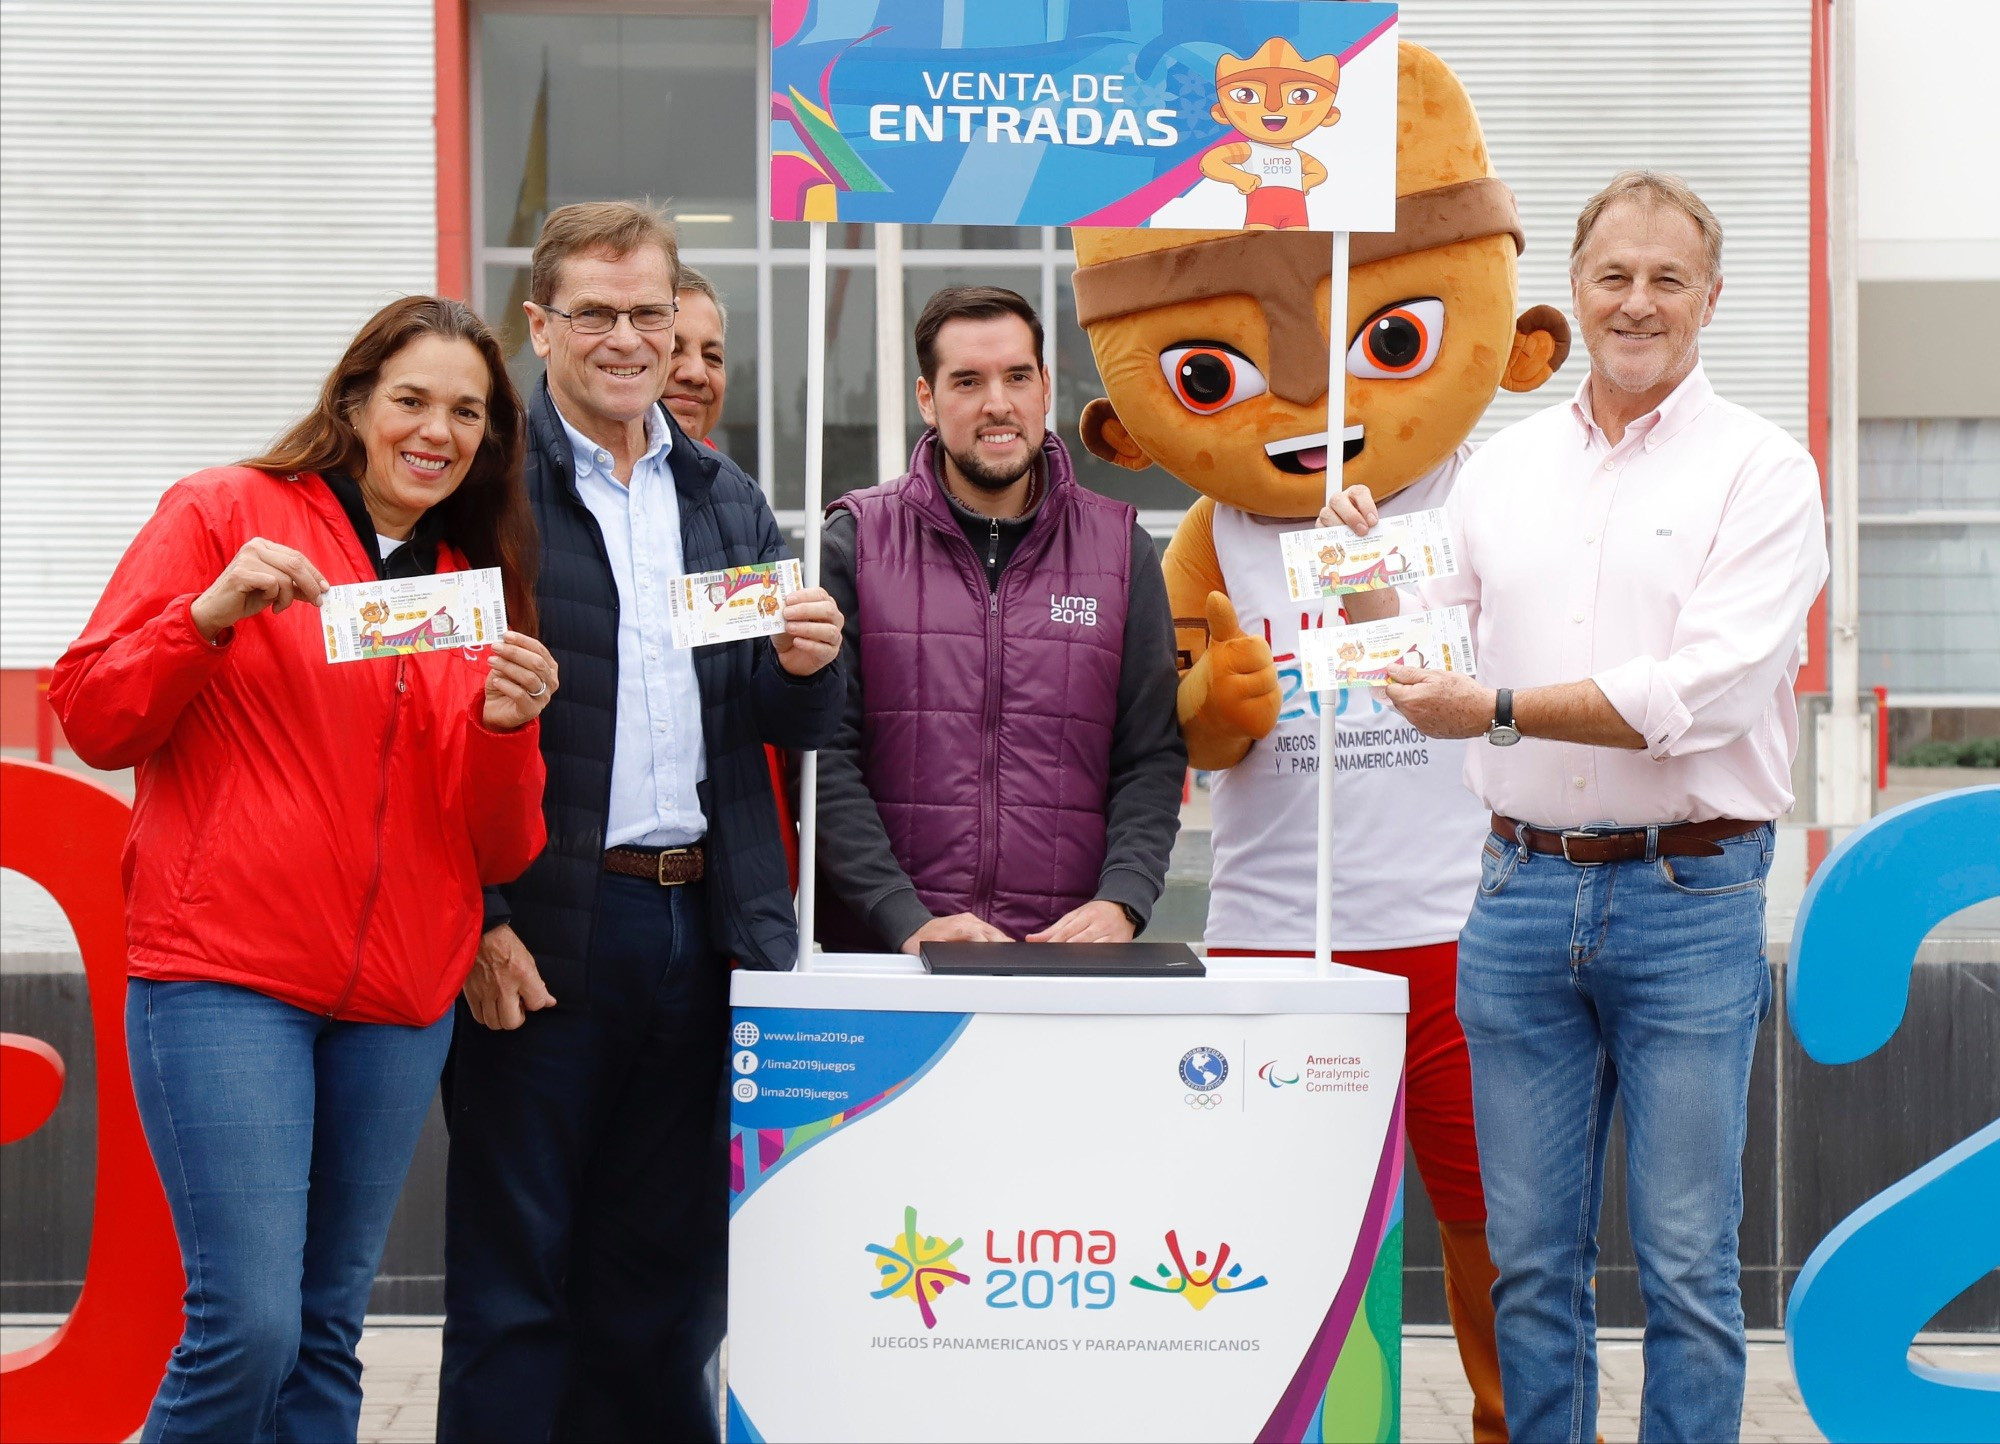 Lima 2019 tickets for Parapan American Games go on sale